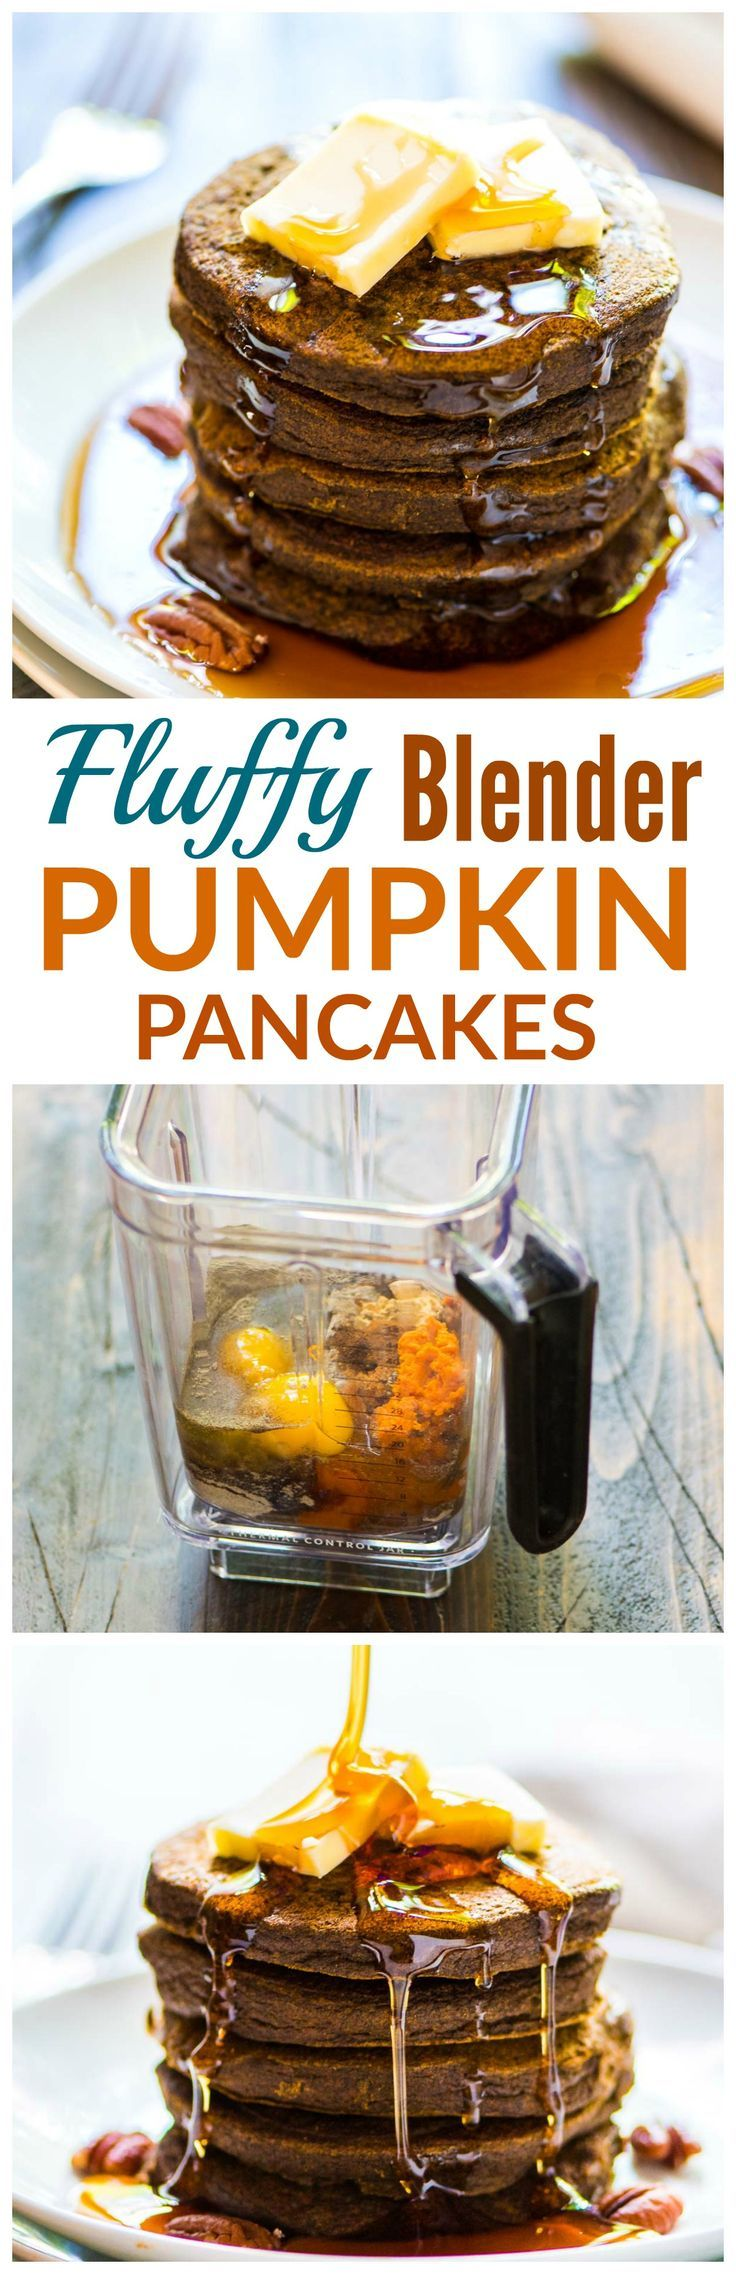 The FLUFFIEST Pumpkin Pancakes, made in the blender - from @wellplated